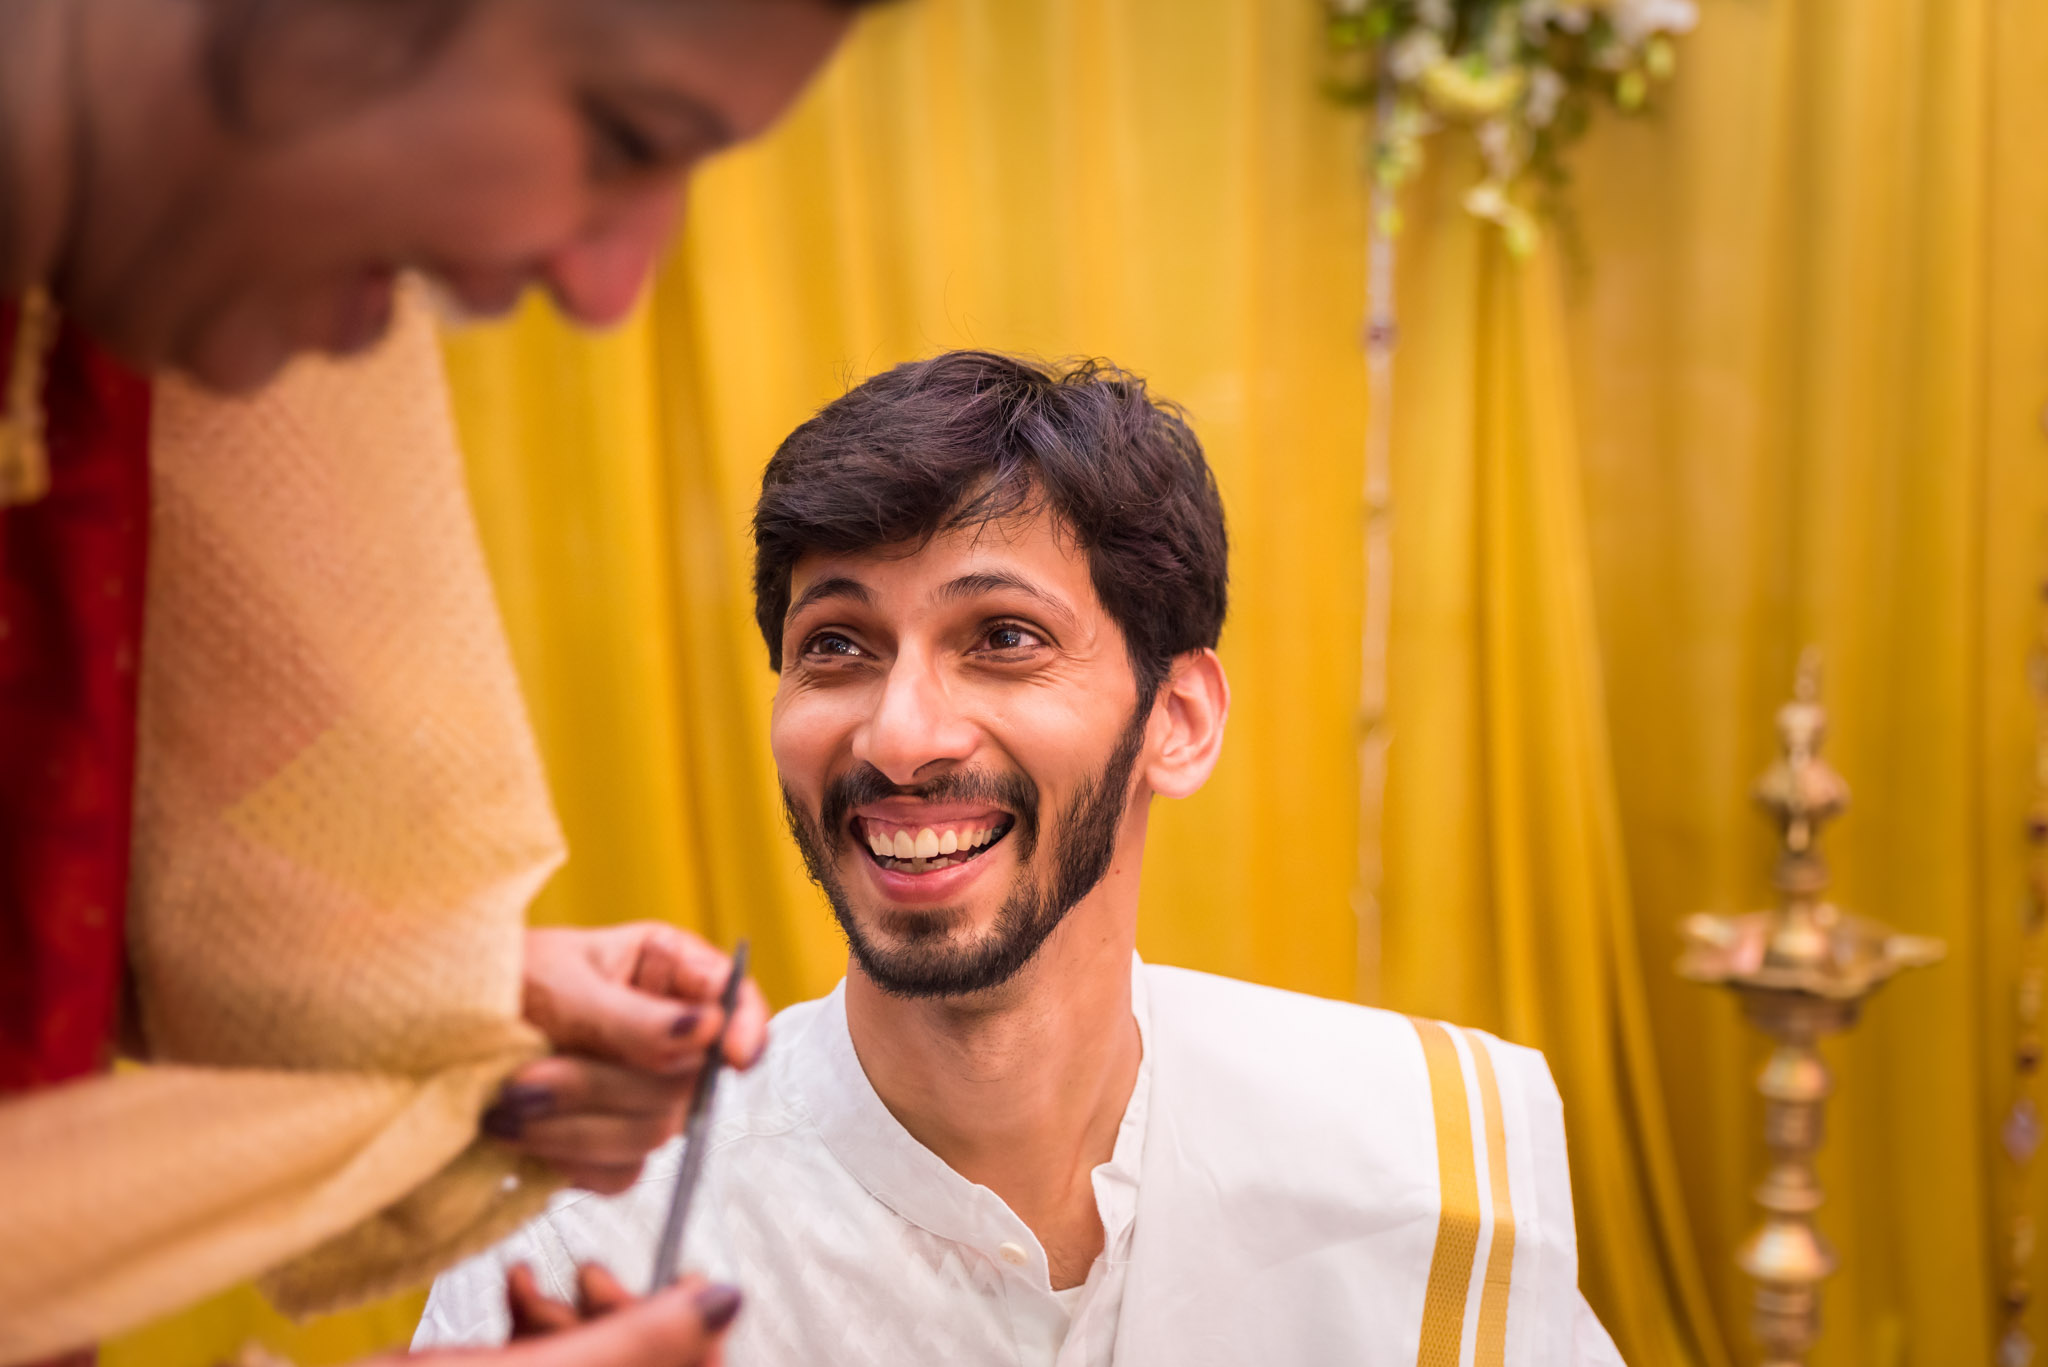 WhatKnot-Candid-Wedding-Photography-Mumbai-Bangalore-96